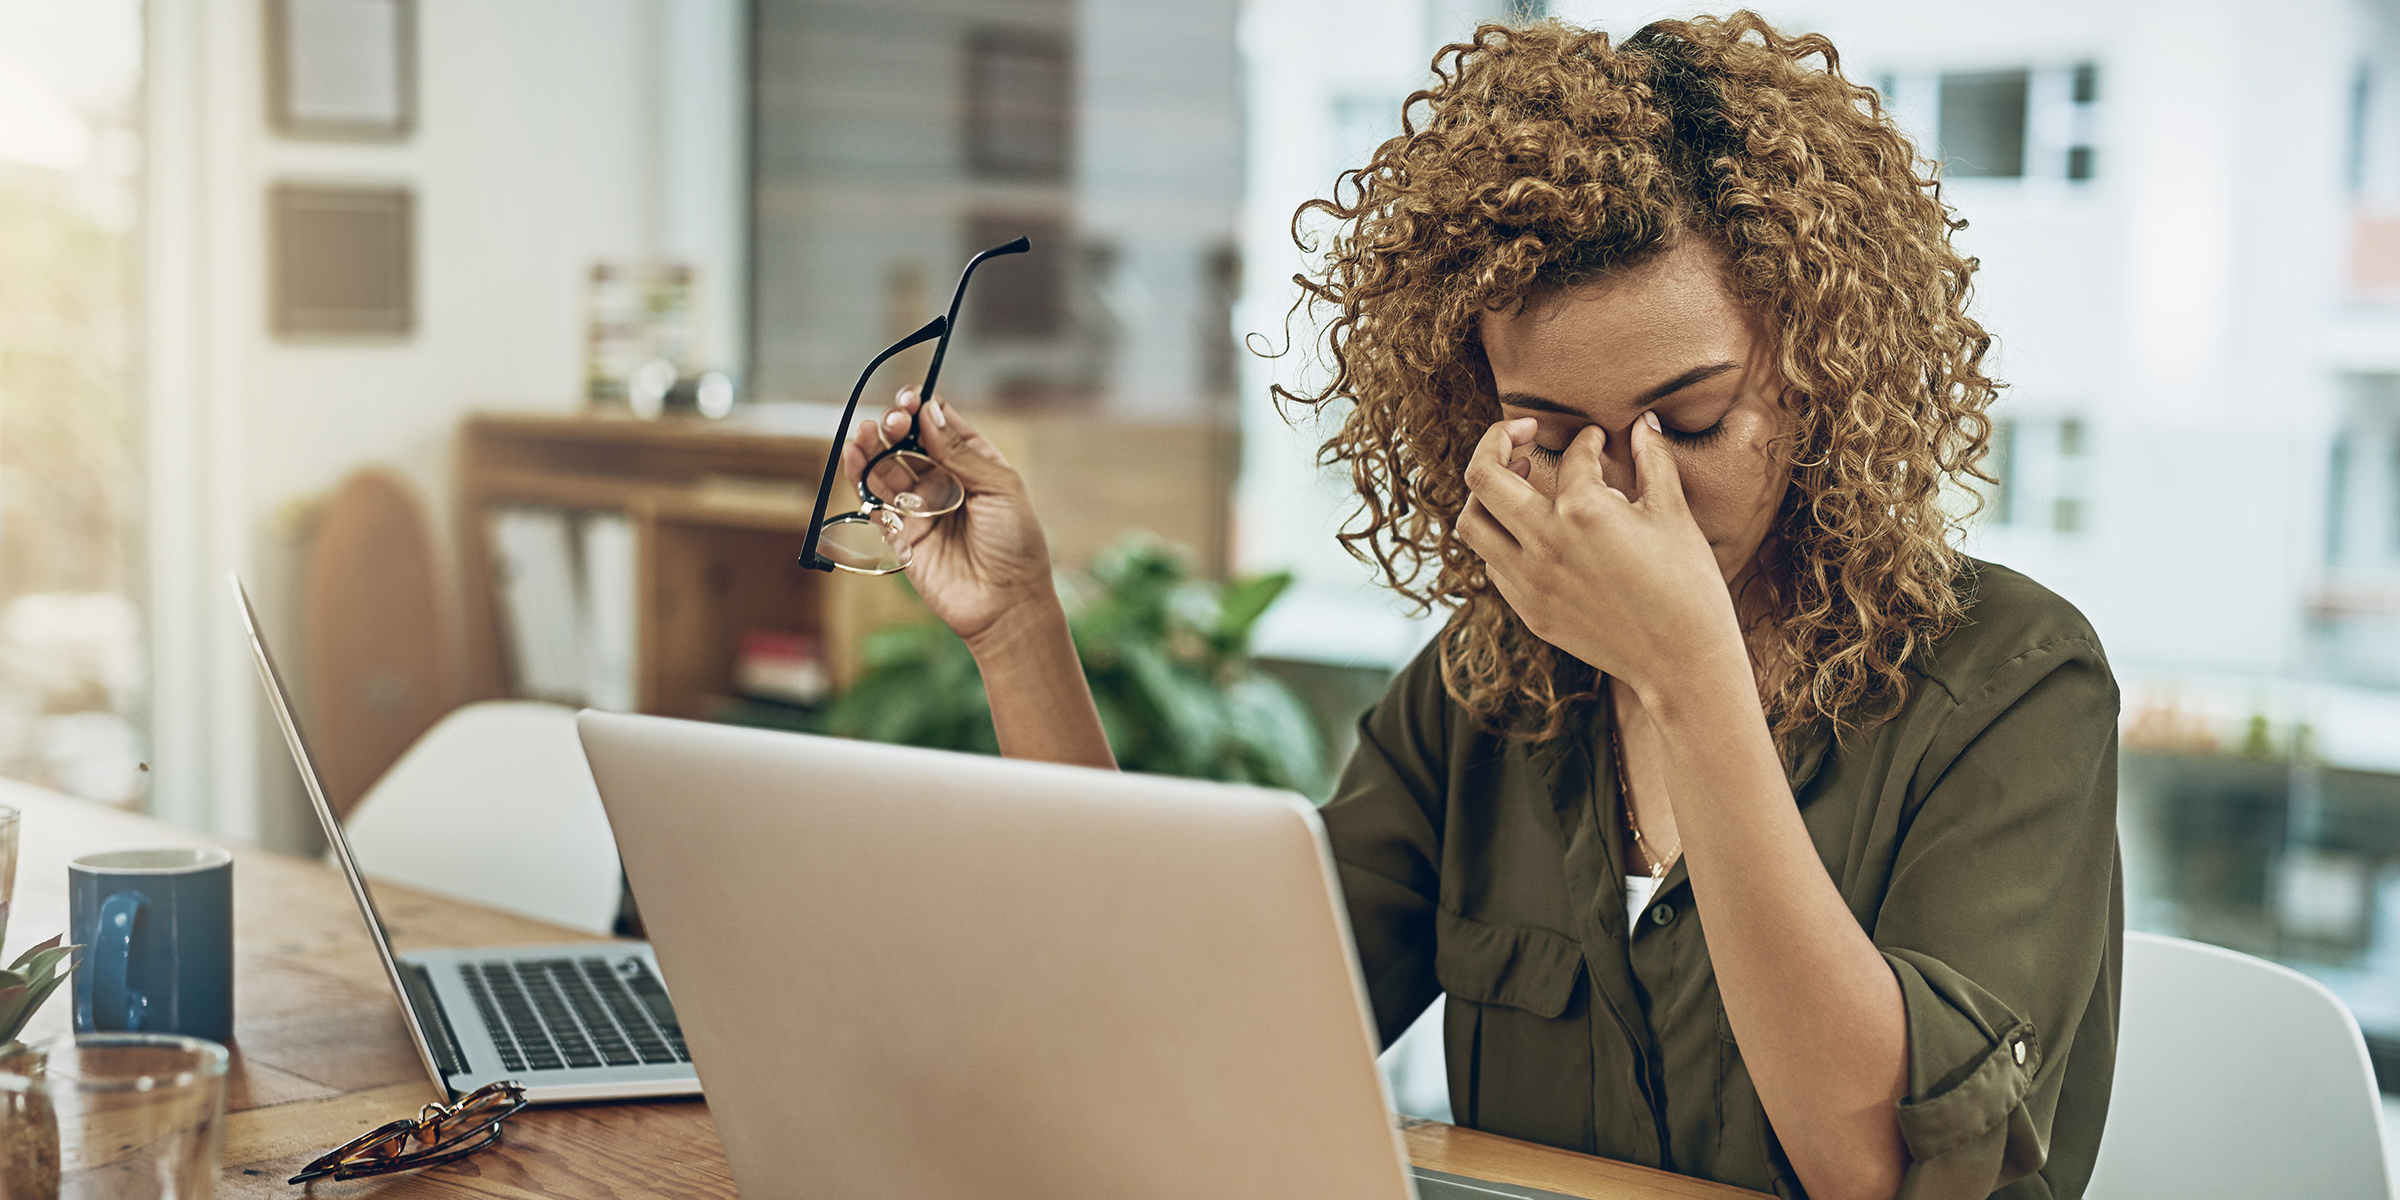 As 'chronic grind' causes more burnout some experts worry it's really depression